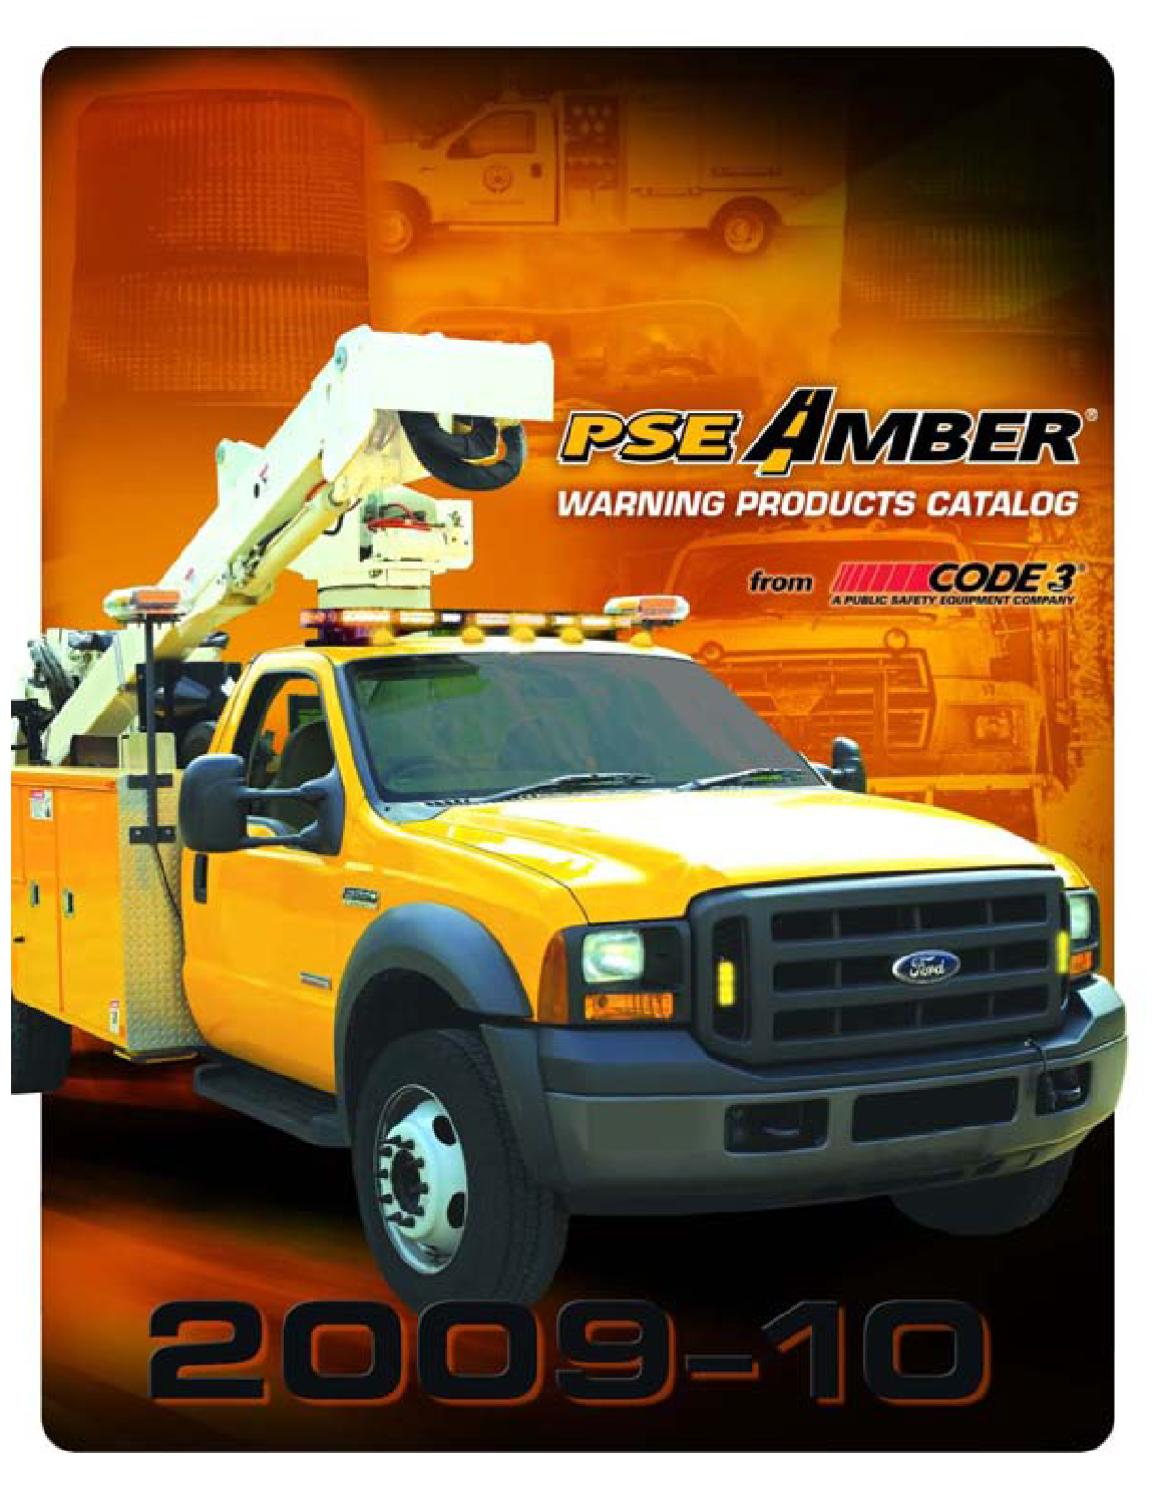 Code 3 Amber Products Catalog By Canyon Fleet Outfitters Issuu Flasher Wiring Diagram